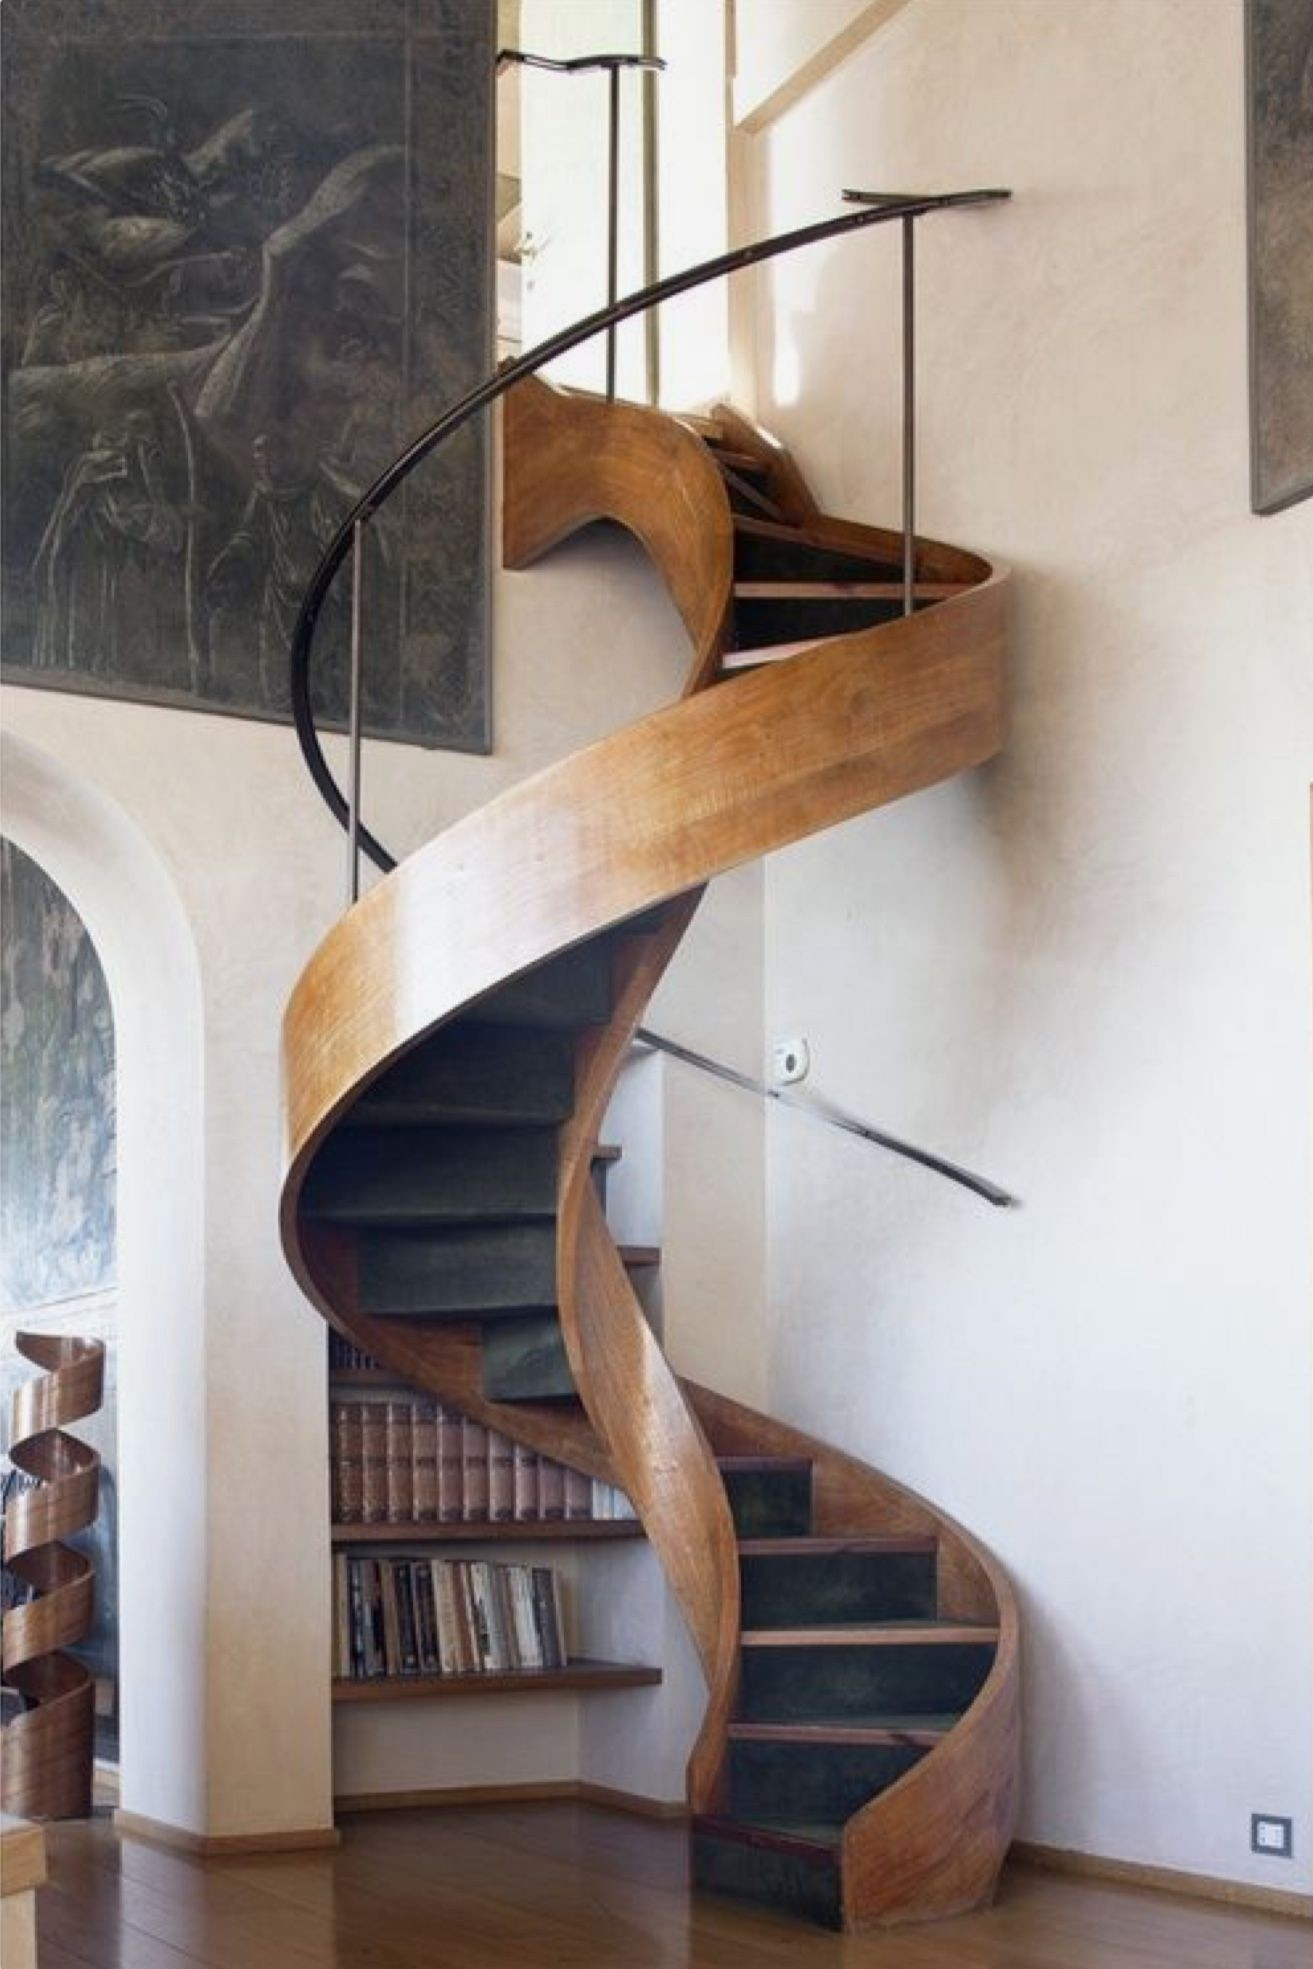 Loft With Stairs For 2020 Ideas On Foter   Stair Designs For Small Areas   Creative   Simple   Steep Stair   Trendy   Living Room